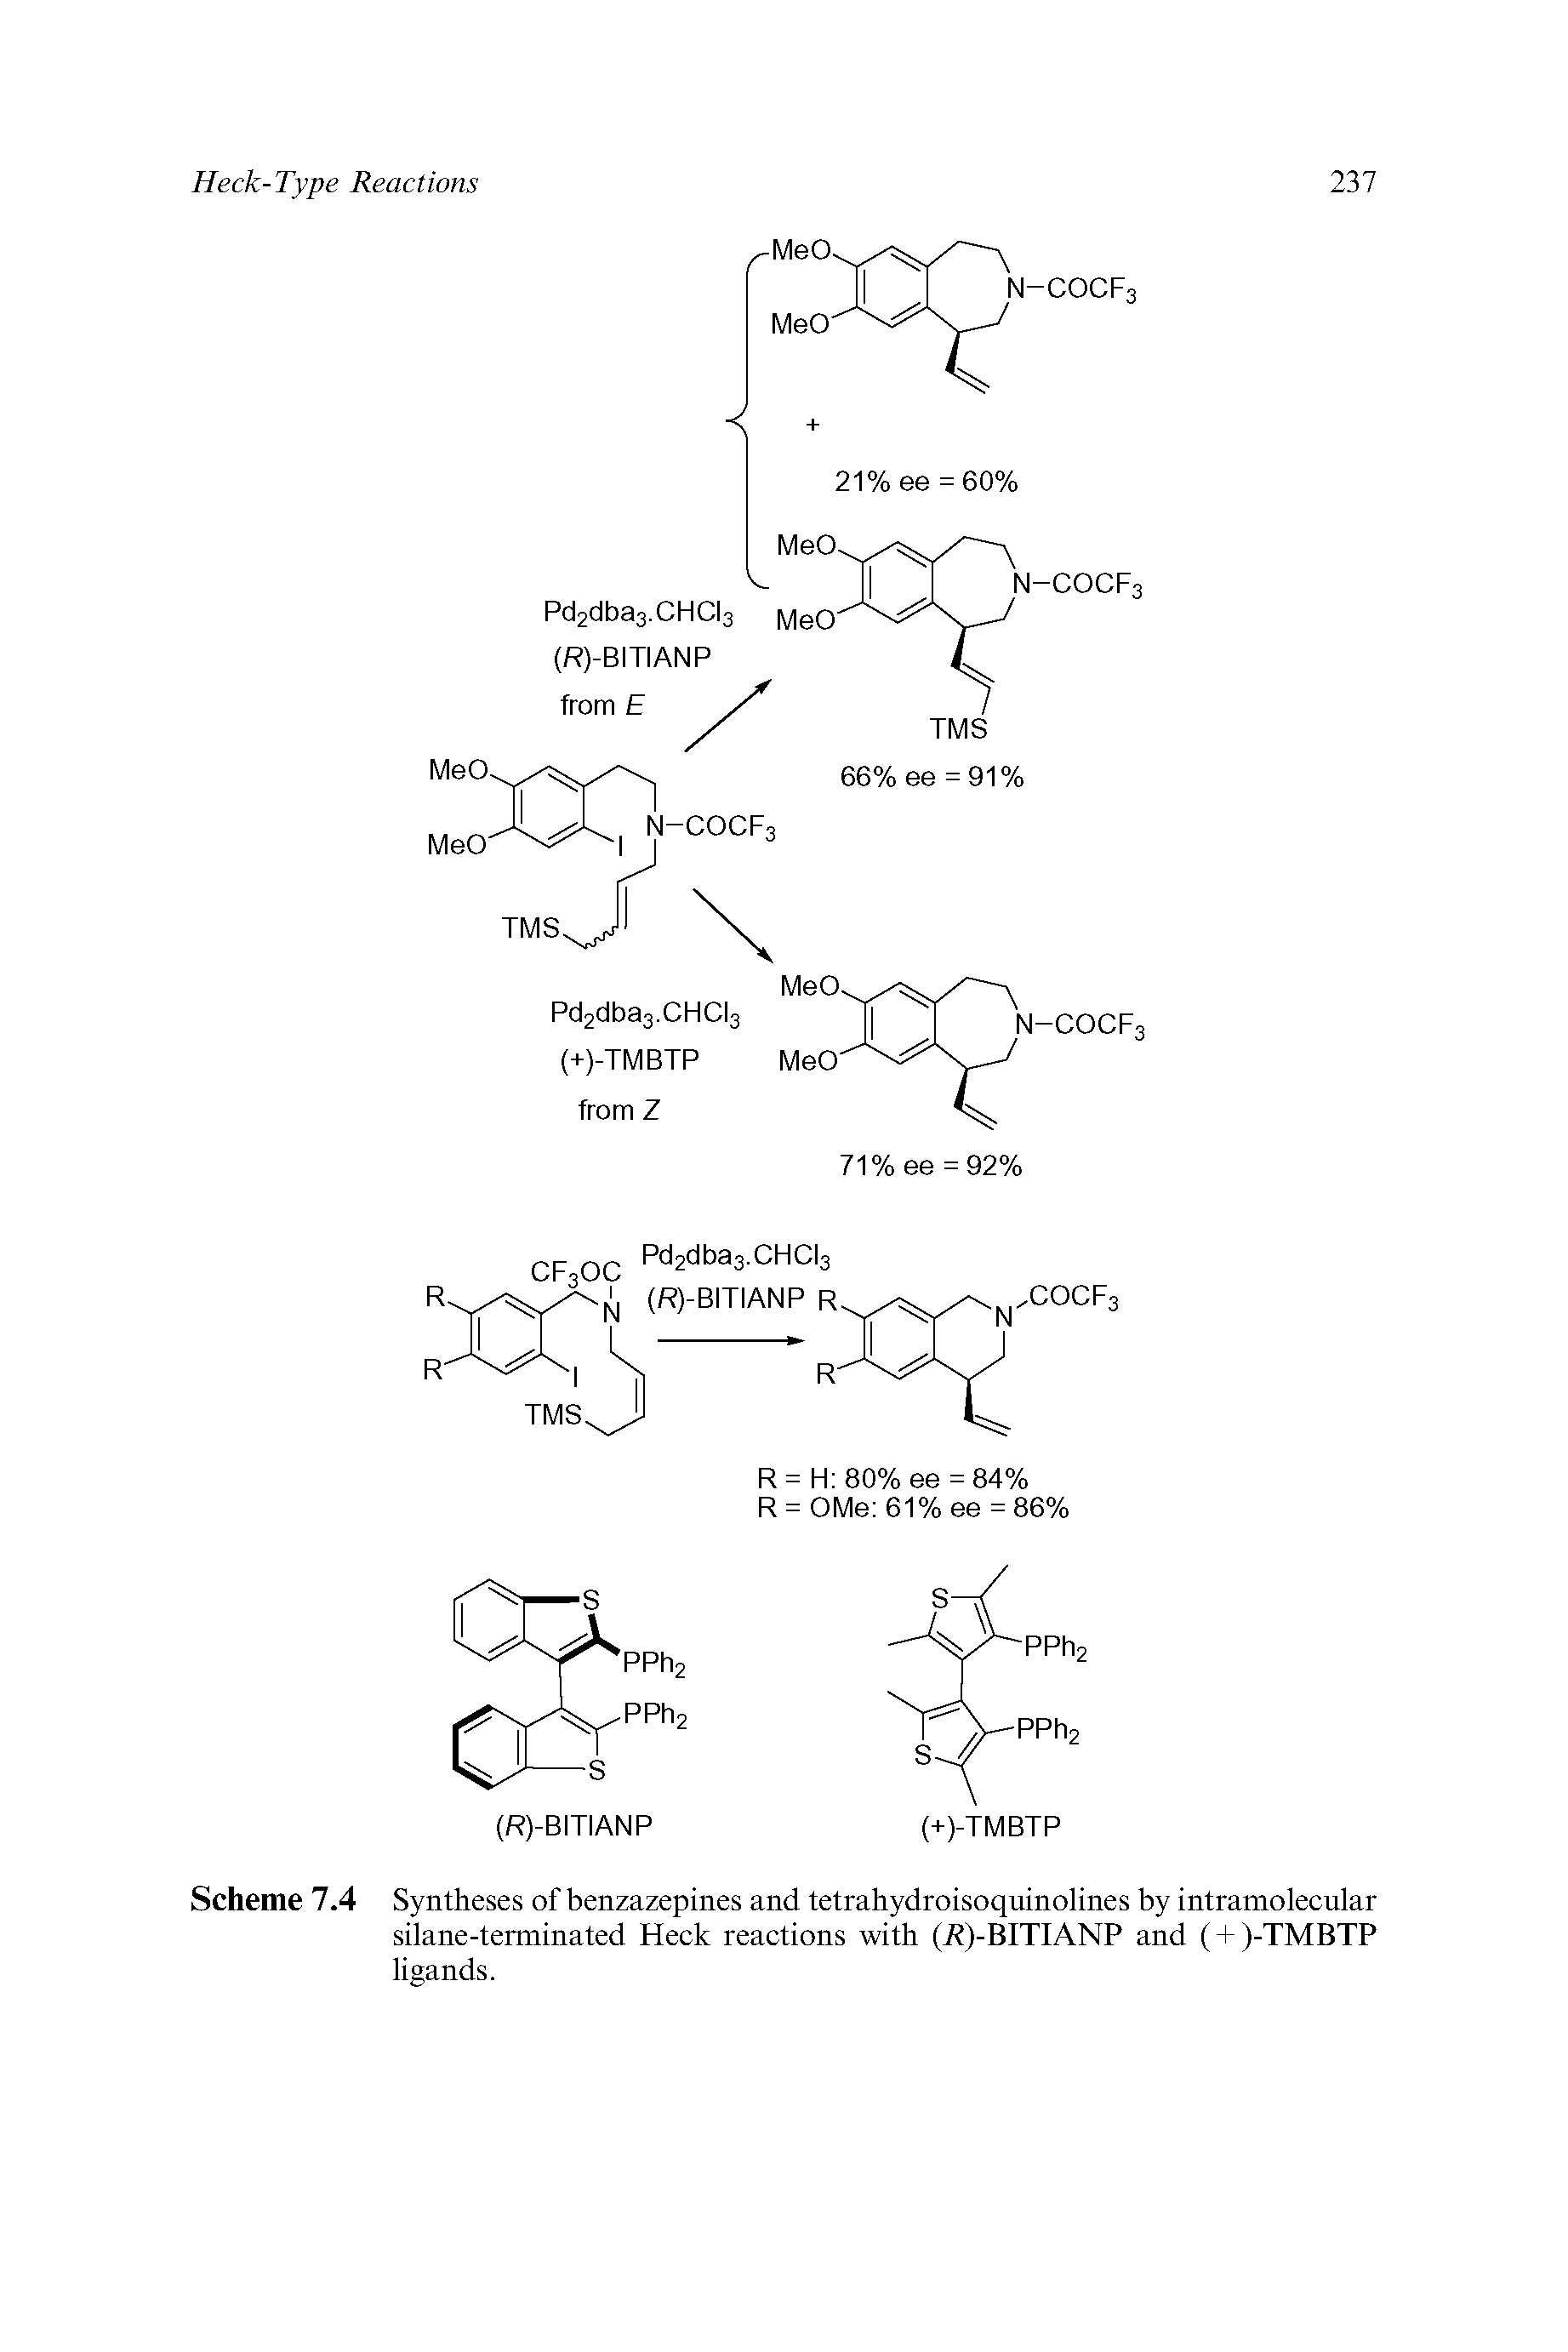 "Scheme 7.4 Syntheses of benzazepines and tetrahydroisoquinolines by <a href=""/info/heck_reaction_silane_terminated_intramolecular"">intramolecular silane-terminated Heck reactions</a> with (T )-BITIANP and ( + )-TMBTP ligands."